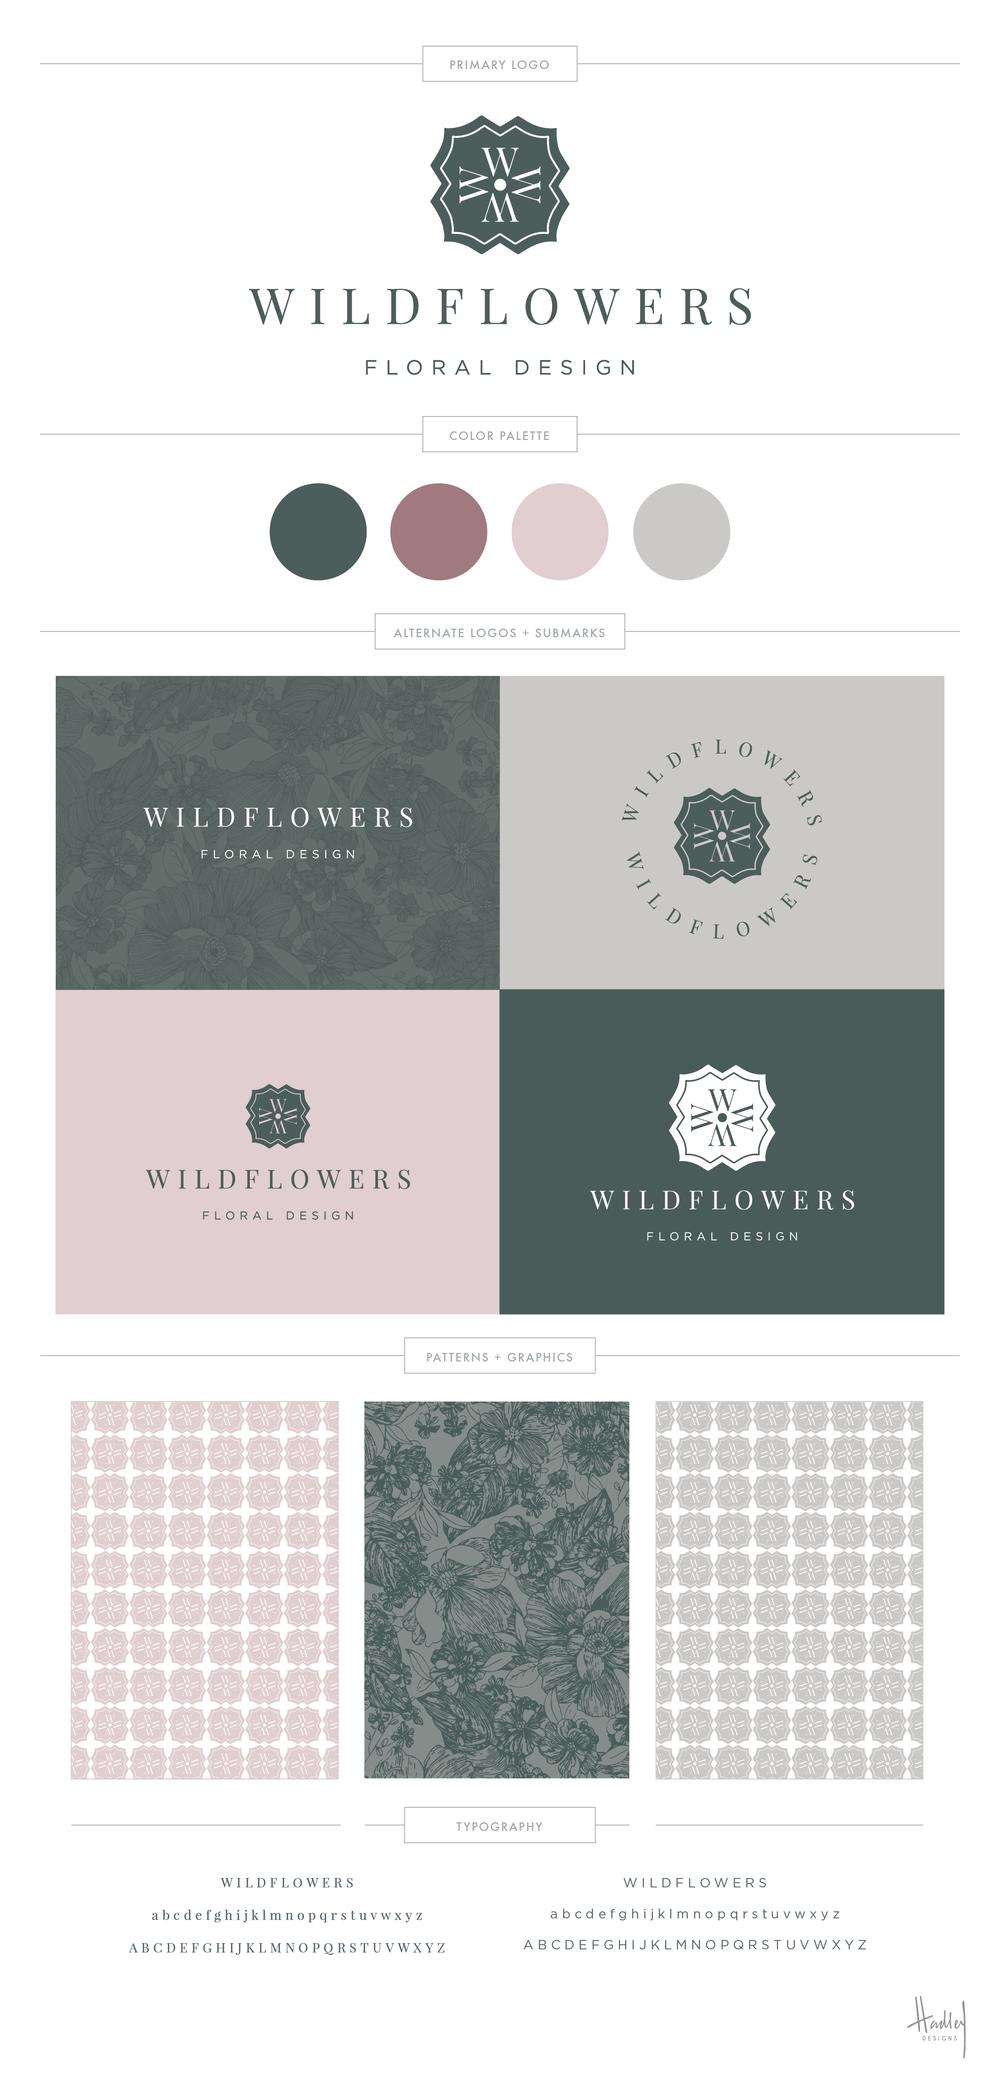 Wildflowers_Branding.png